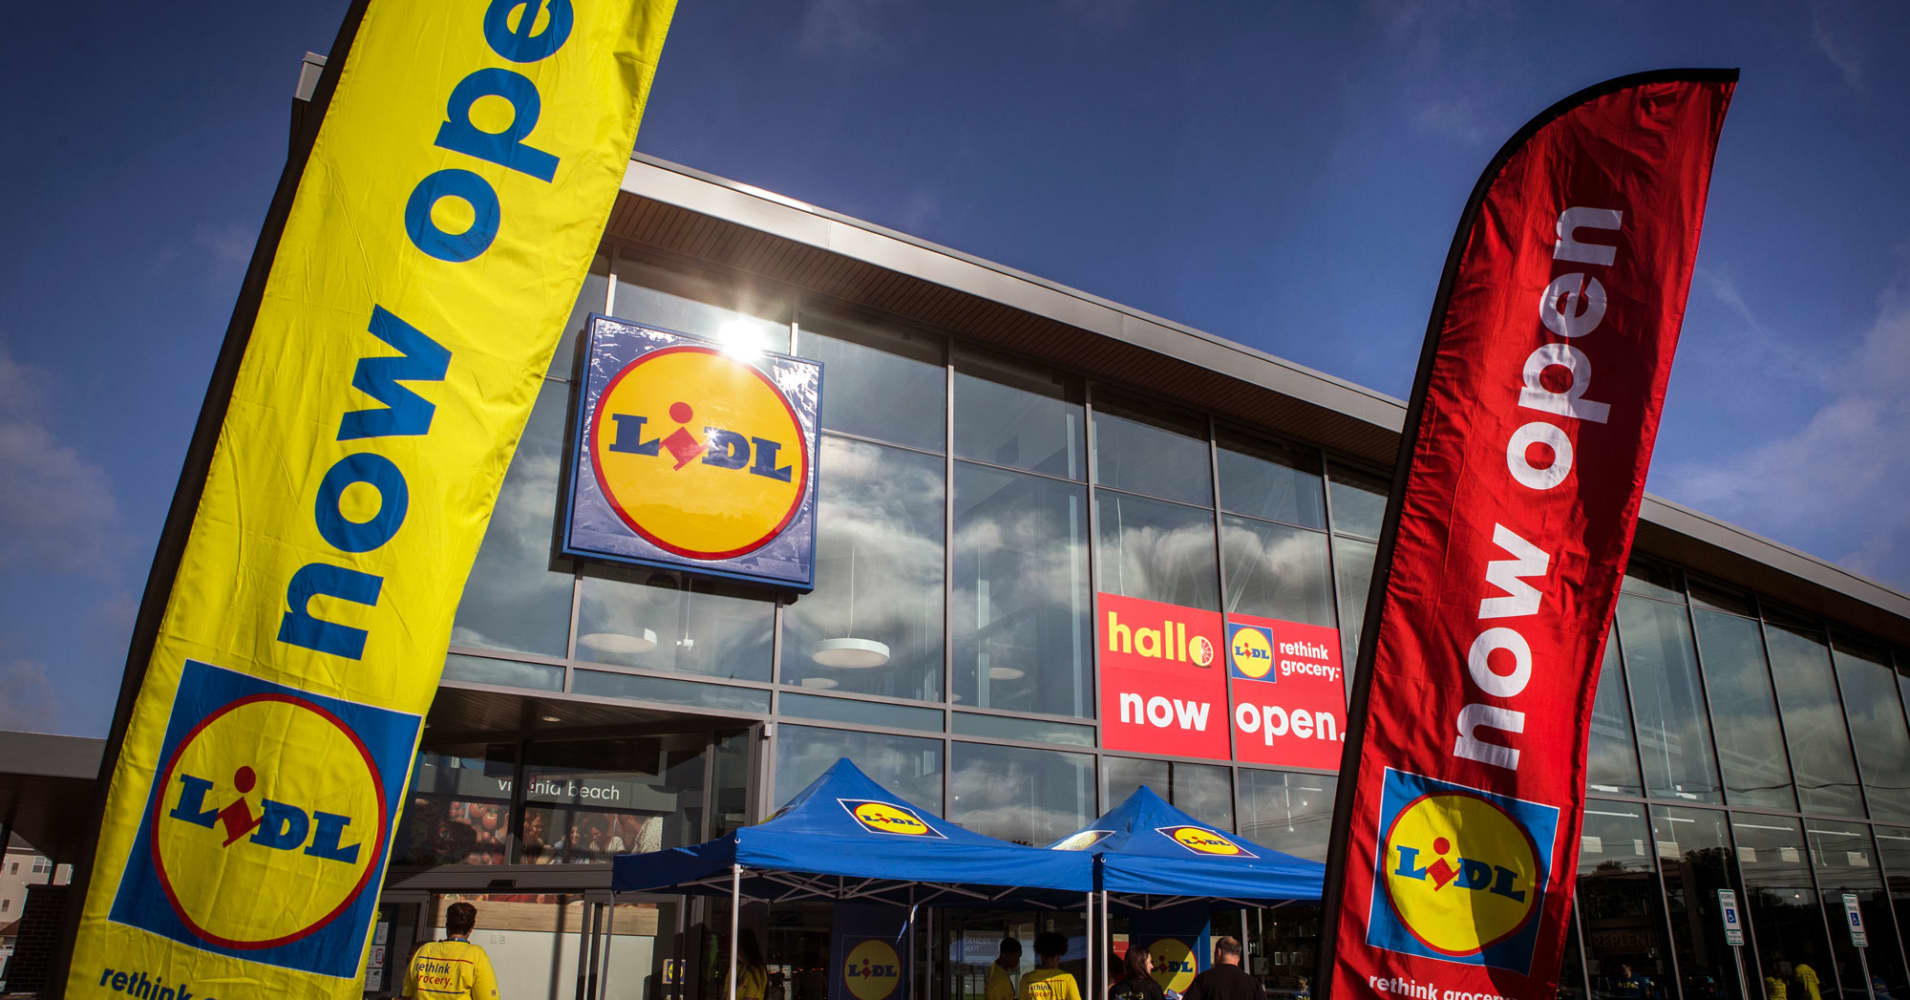 Here's when and where Lidl's next US grocery stores will open